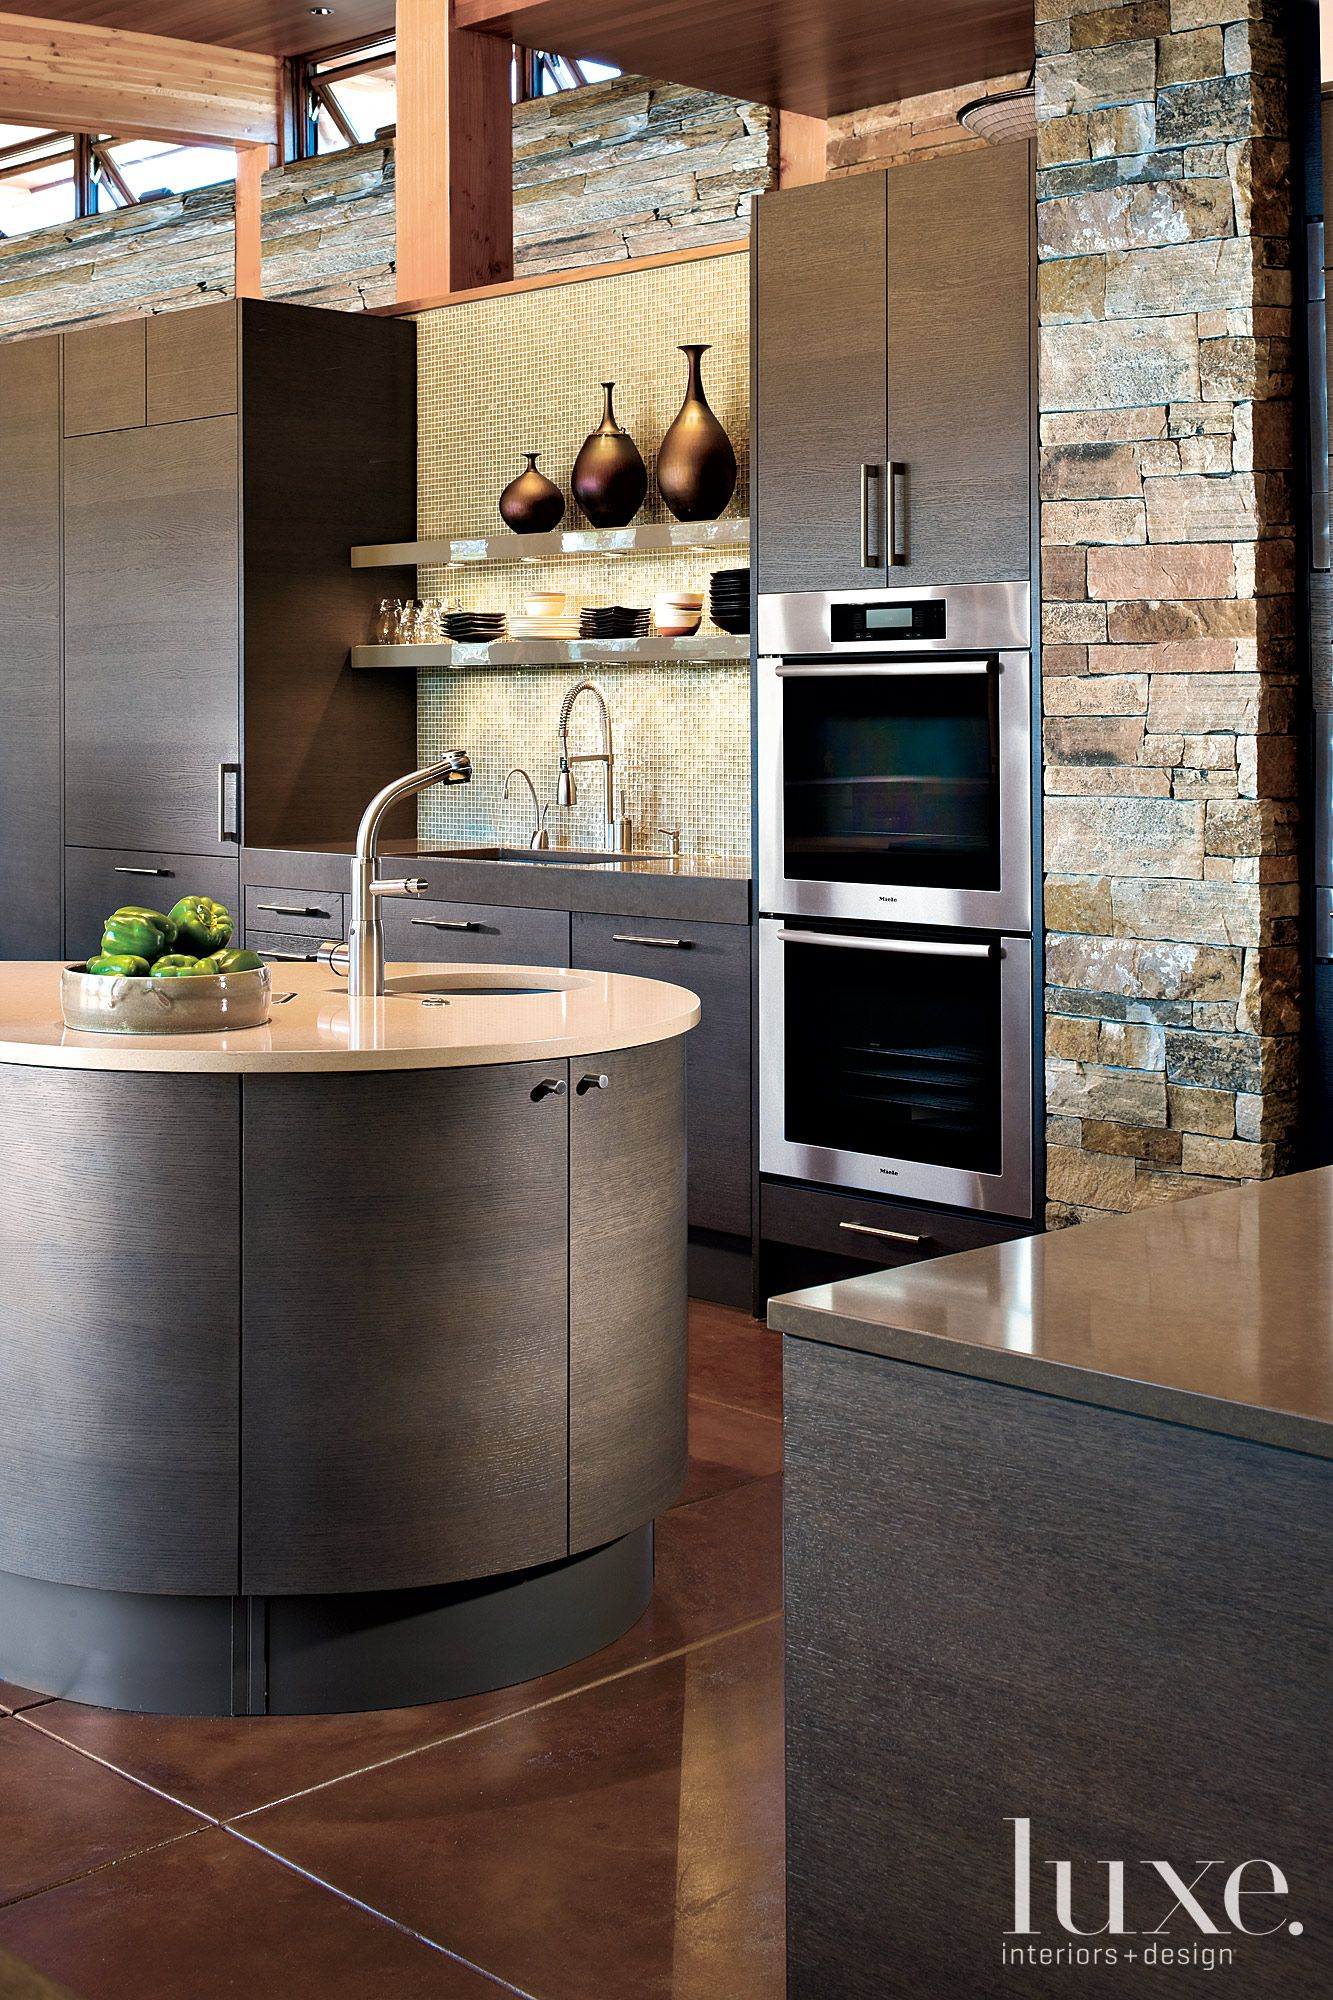 Cucina Interior Design Rustic Modern Kitchen With Rustic Elements Warm Wood Beams Flooring